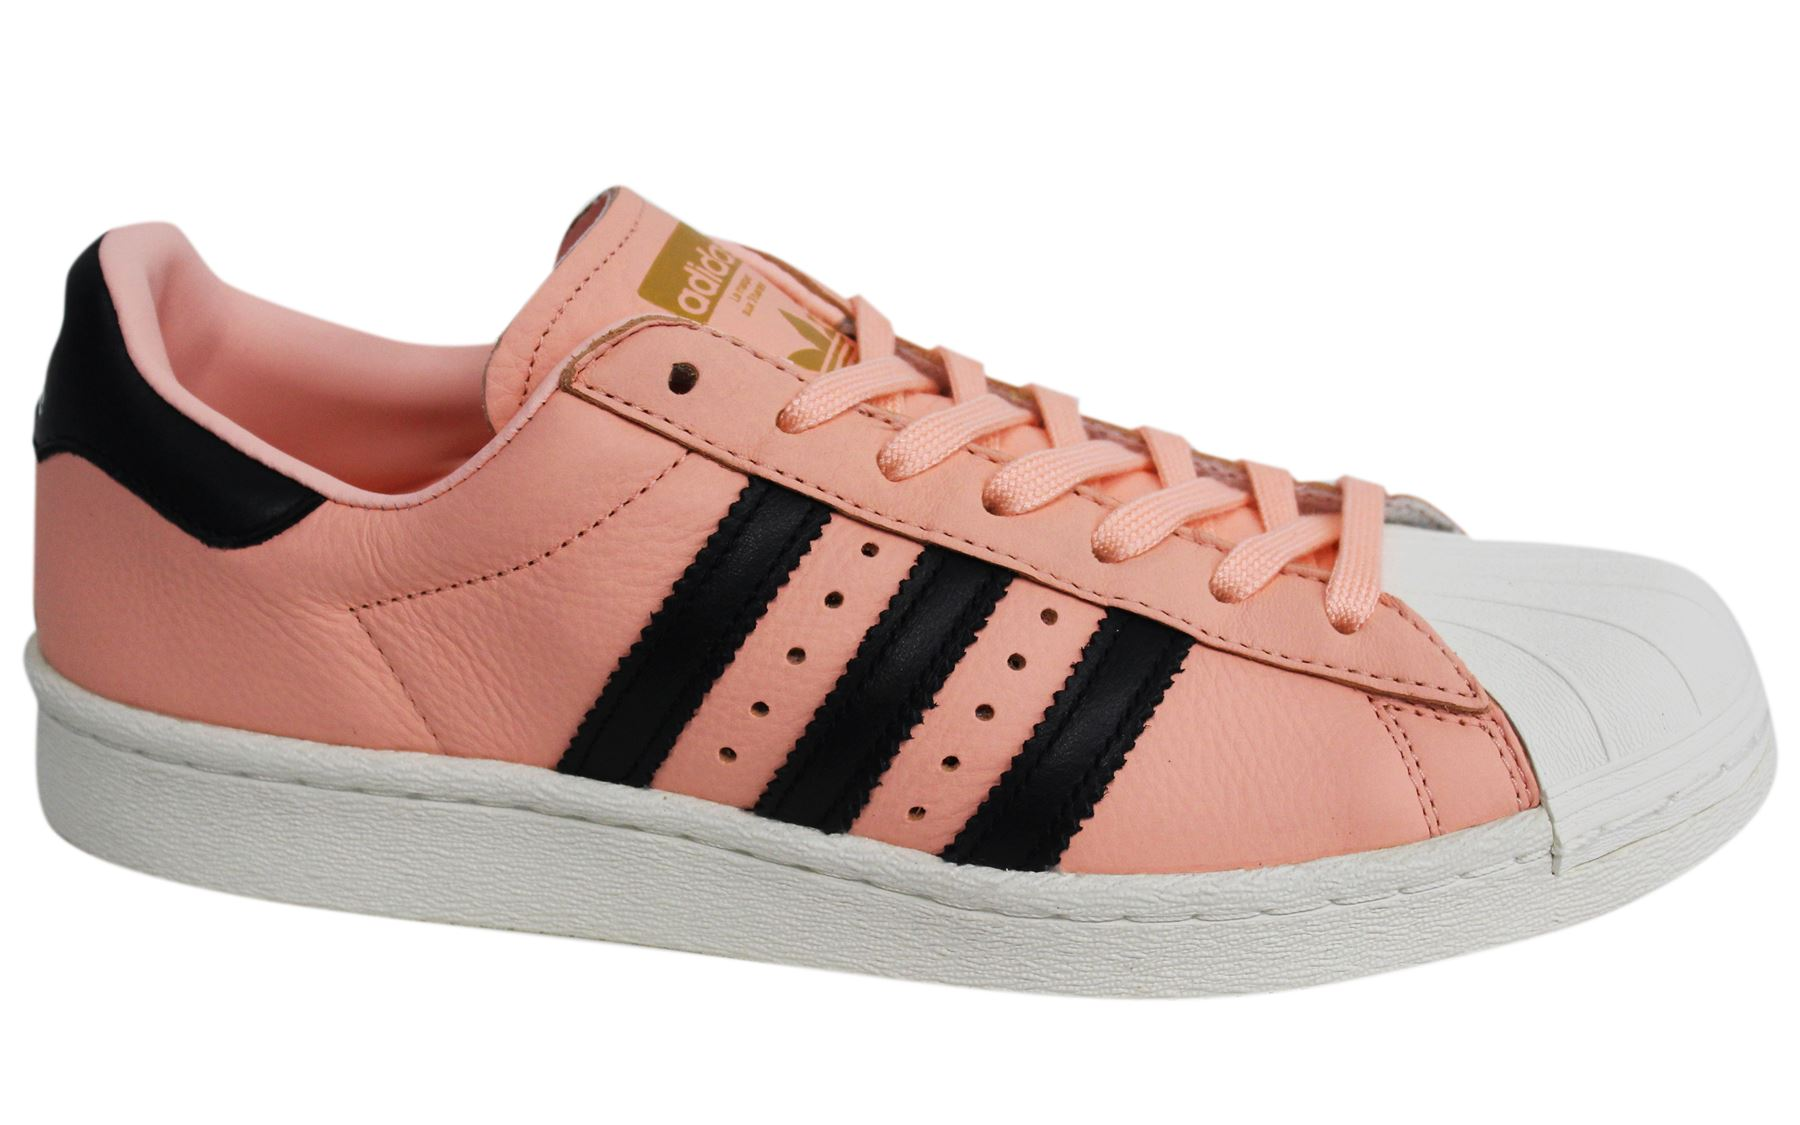 Cheap Adidas Originals Superstar Boost Pink Sneakers BB2731